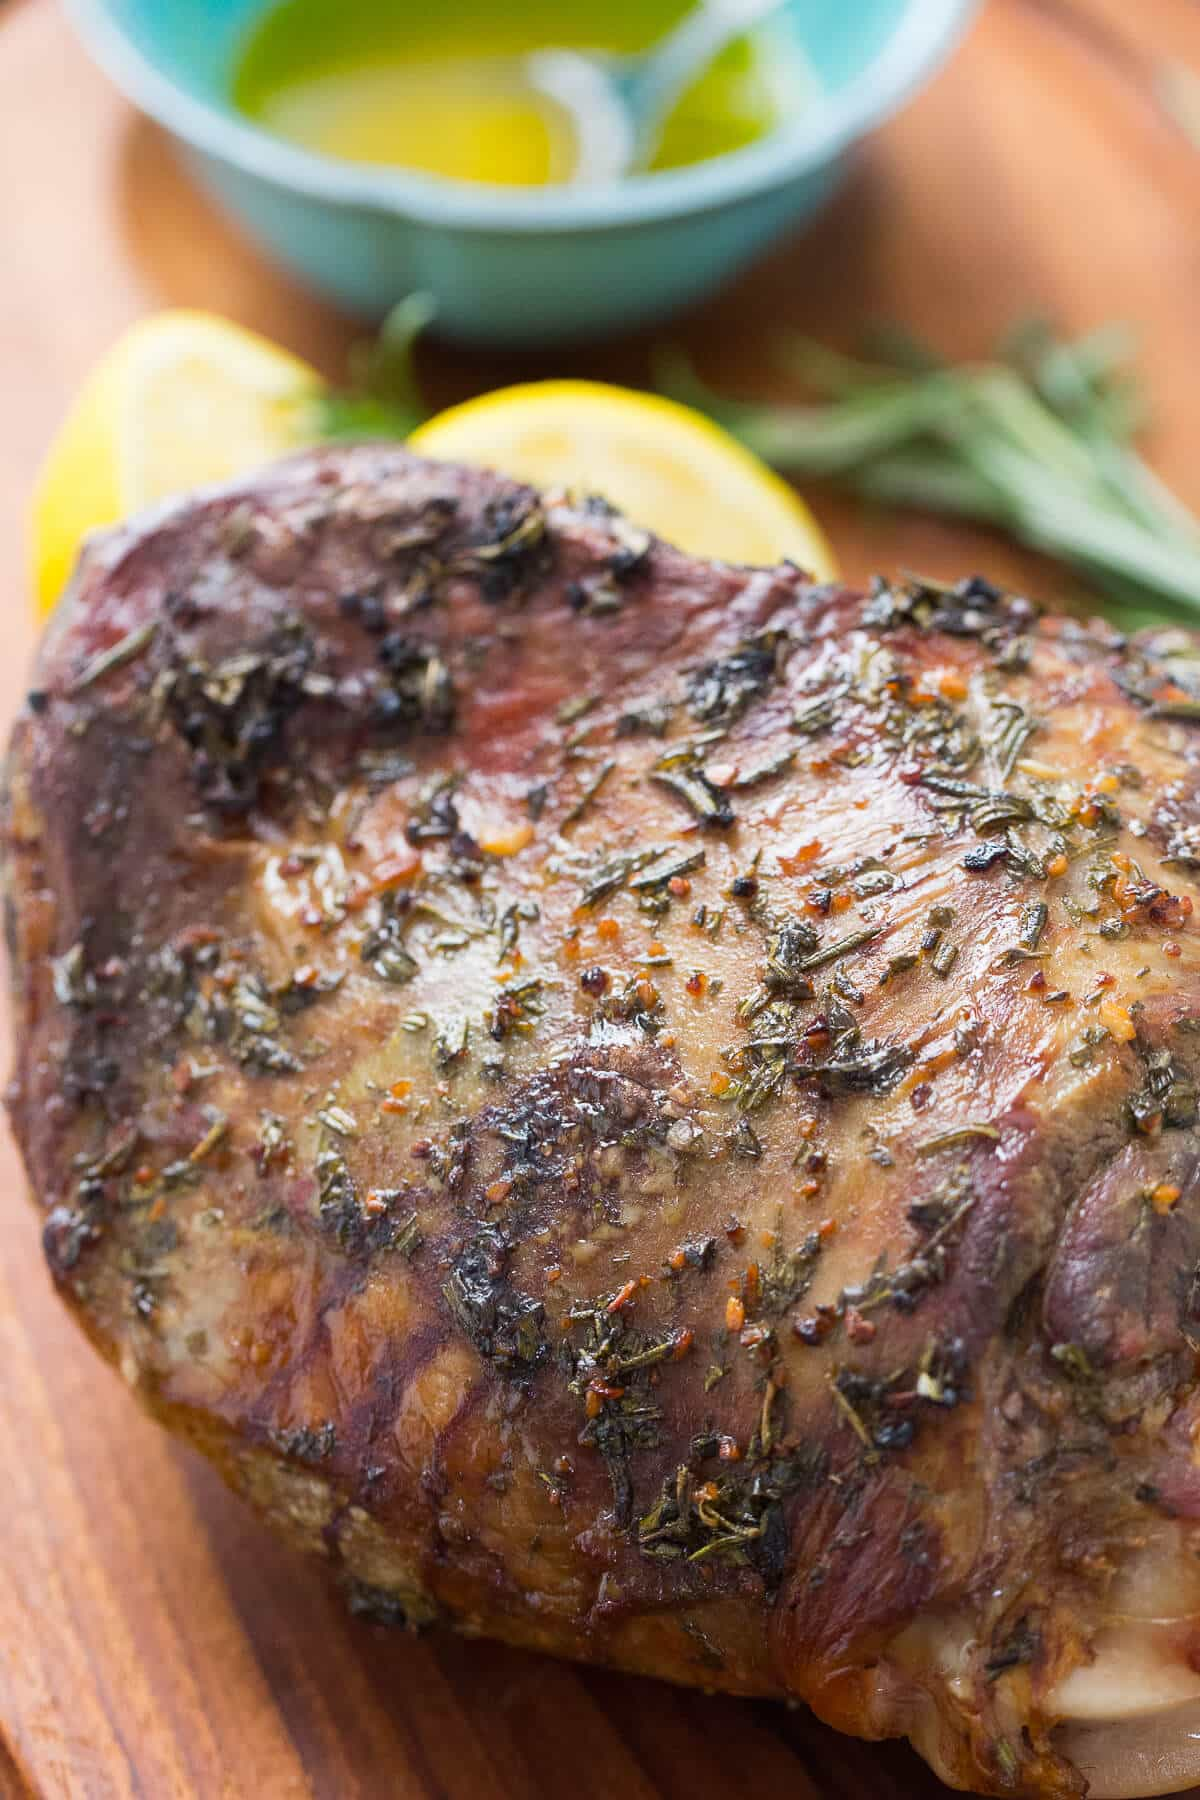 A lamb roast is quite easy to prepare as long you season it well. Serve this lamb with lemon and olive oil for authentic Greek flavor!